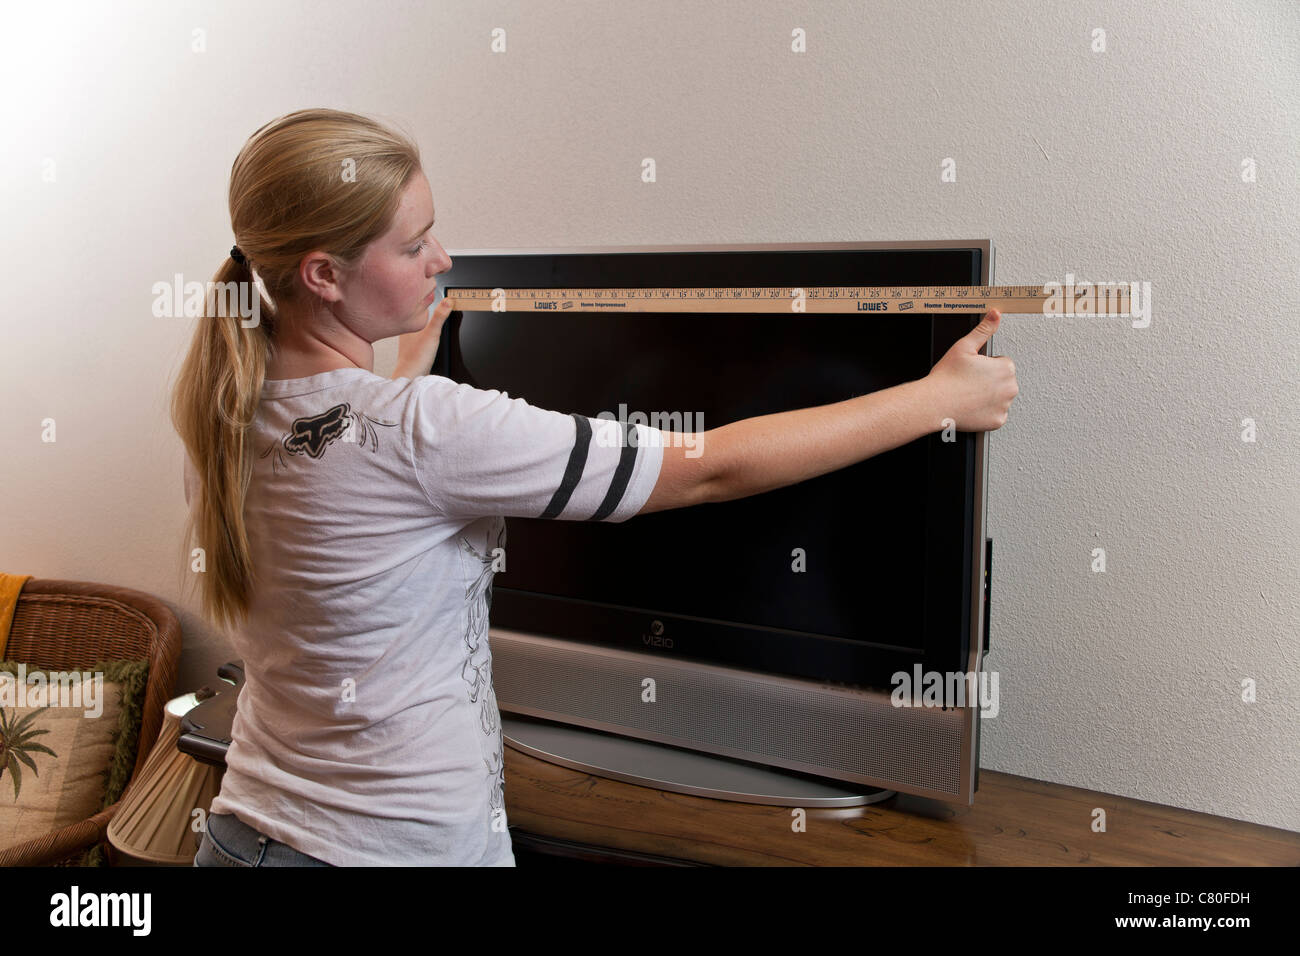 Teenage girl measures the dimensions of a 32 inch TV Screen. MR © Myrleen Pearson - Stock Image